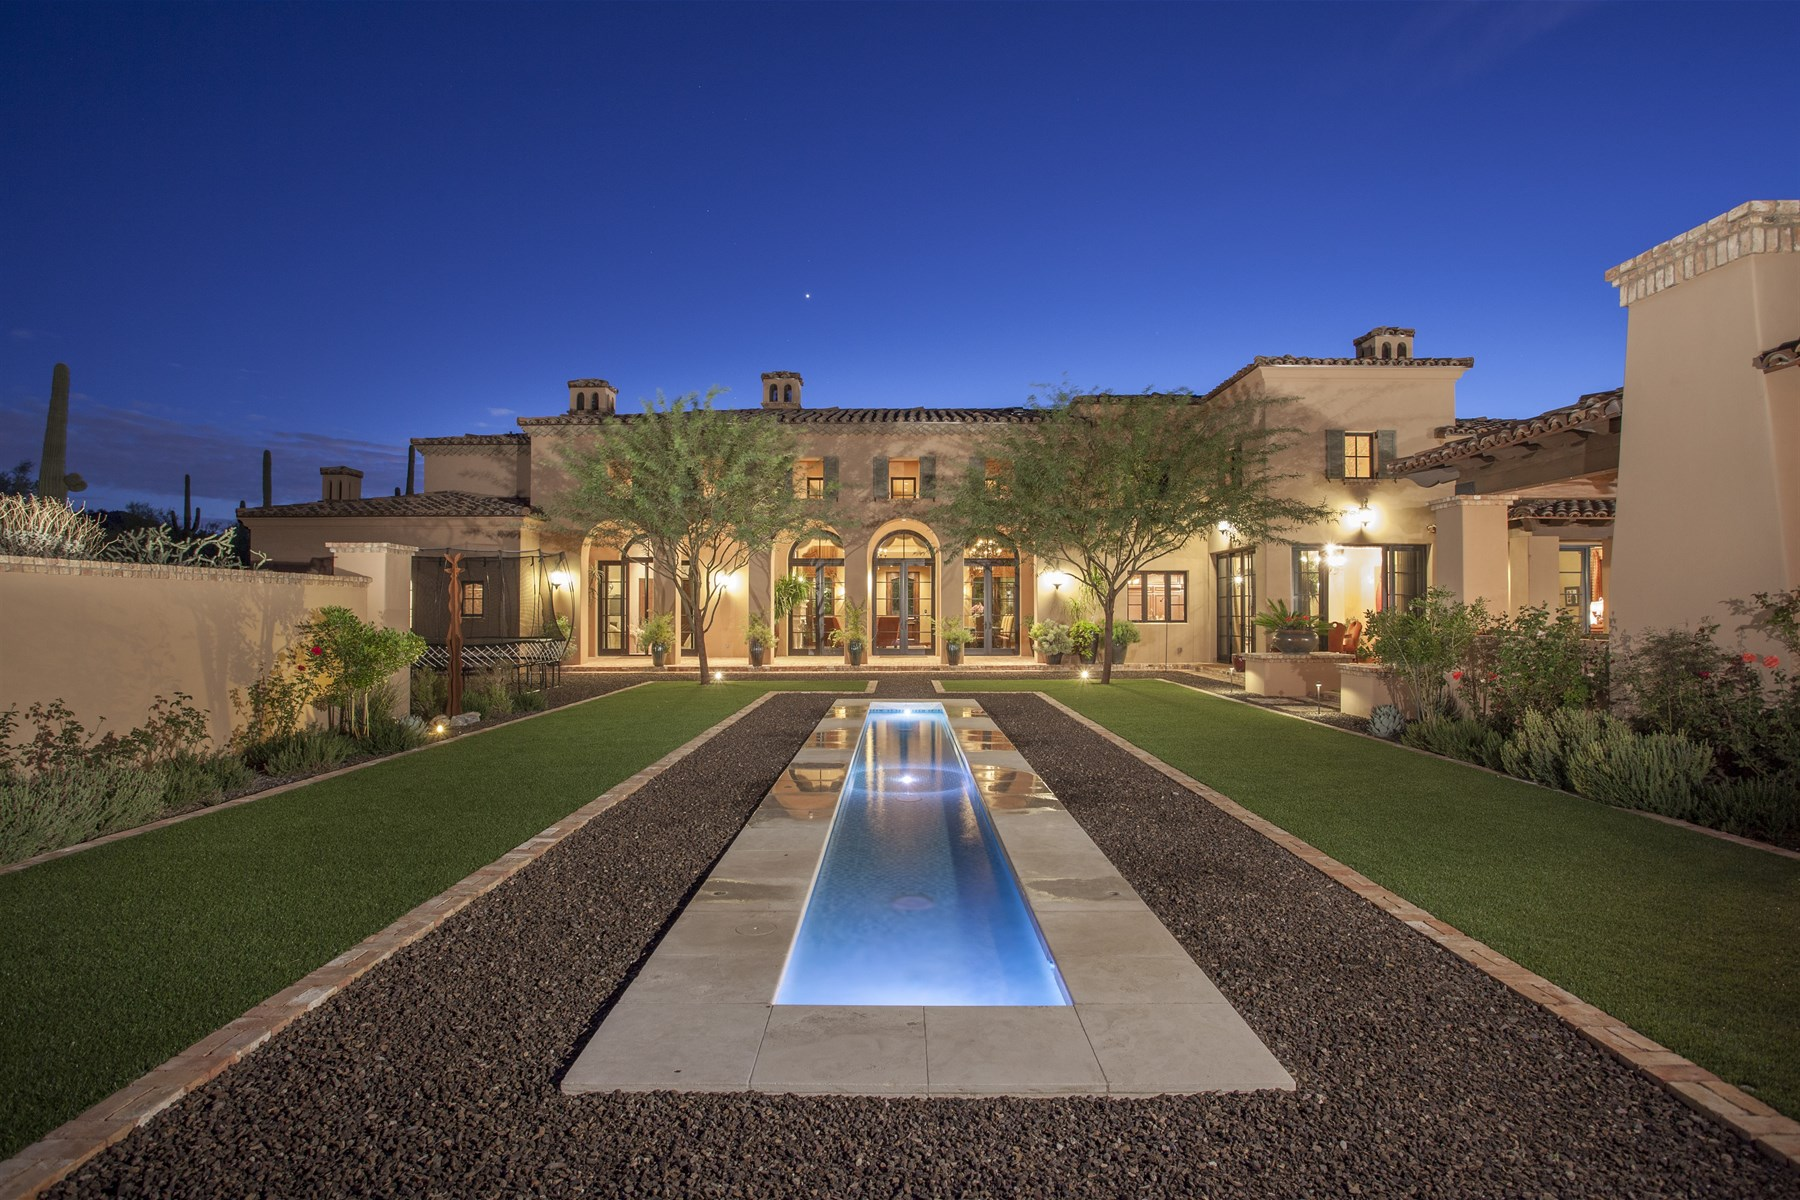 Casa Unifamiliar por un Venta en Beautifully Crafted Luxury Estate in Guard Gated Silverleaf's Upper Canyon 11038 E Saguaro Canyon Trail #1531 Scottsdale, Arizona 85255 Estados Unidos